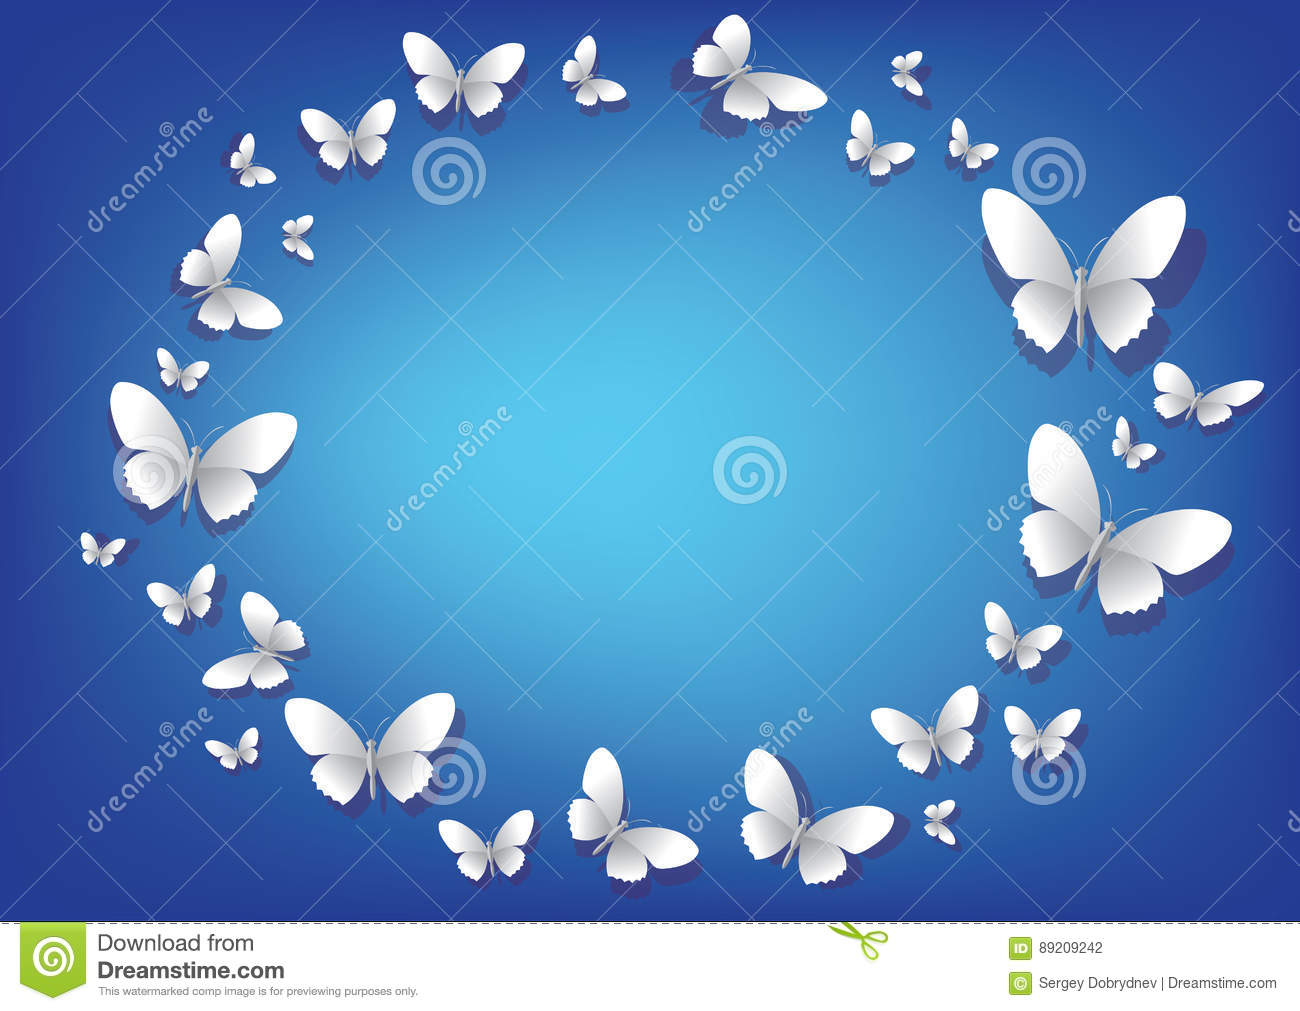 Abstract blue background with white paper butterflies for White paper butterflies